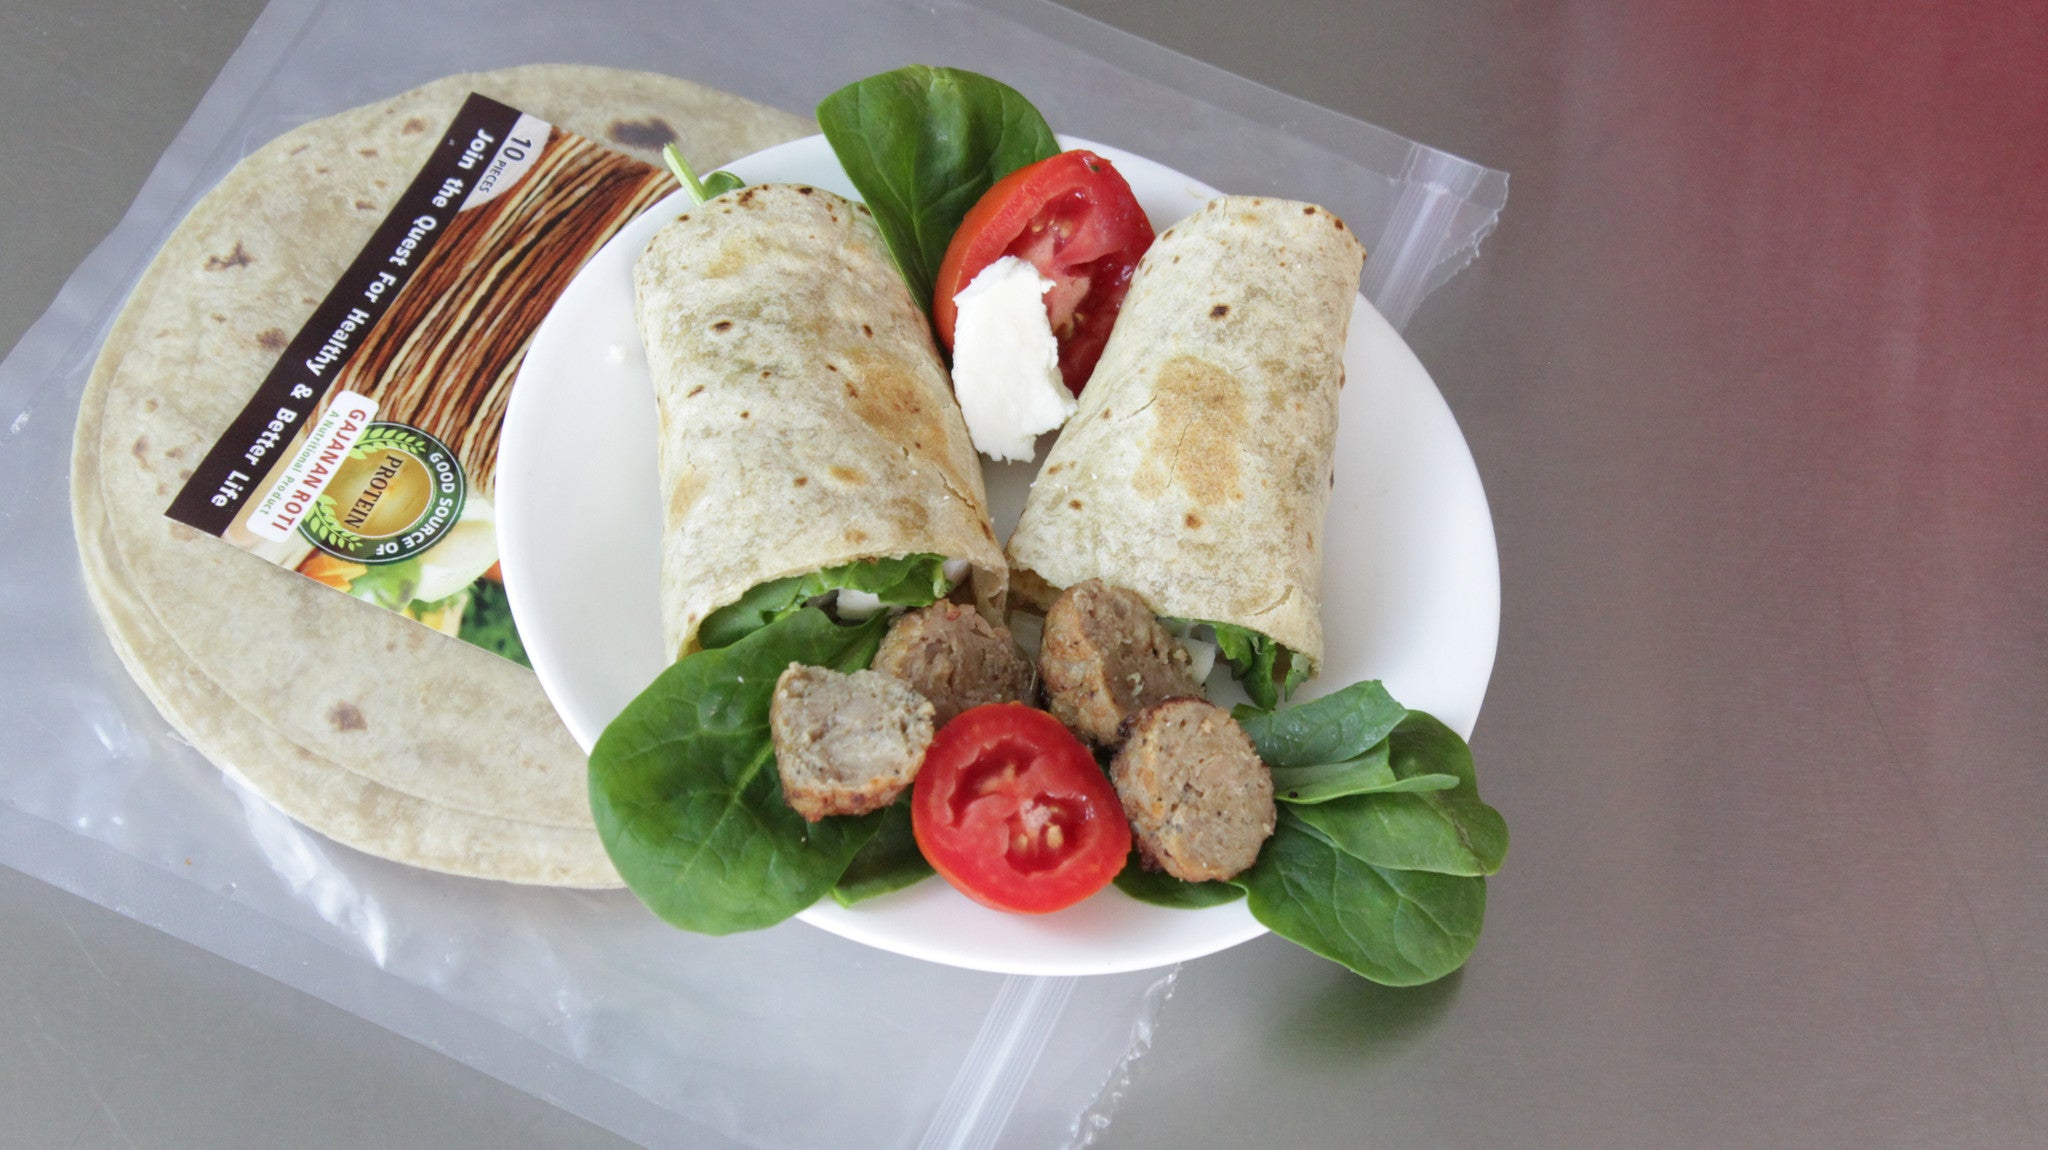 Nutritious lunch wrap - American Roti wrap